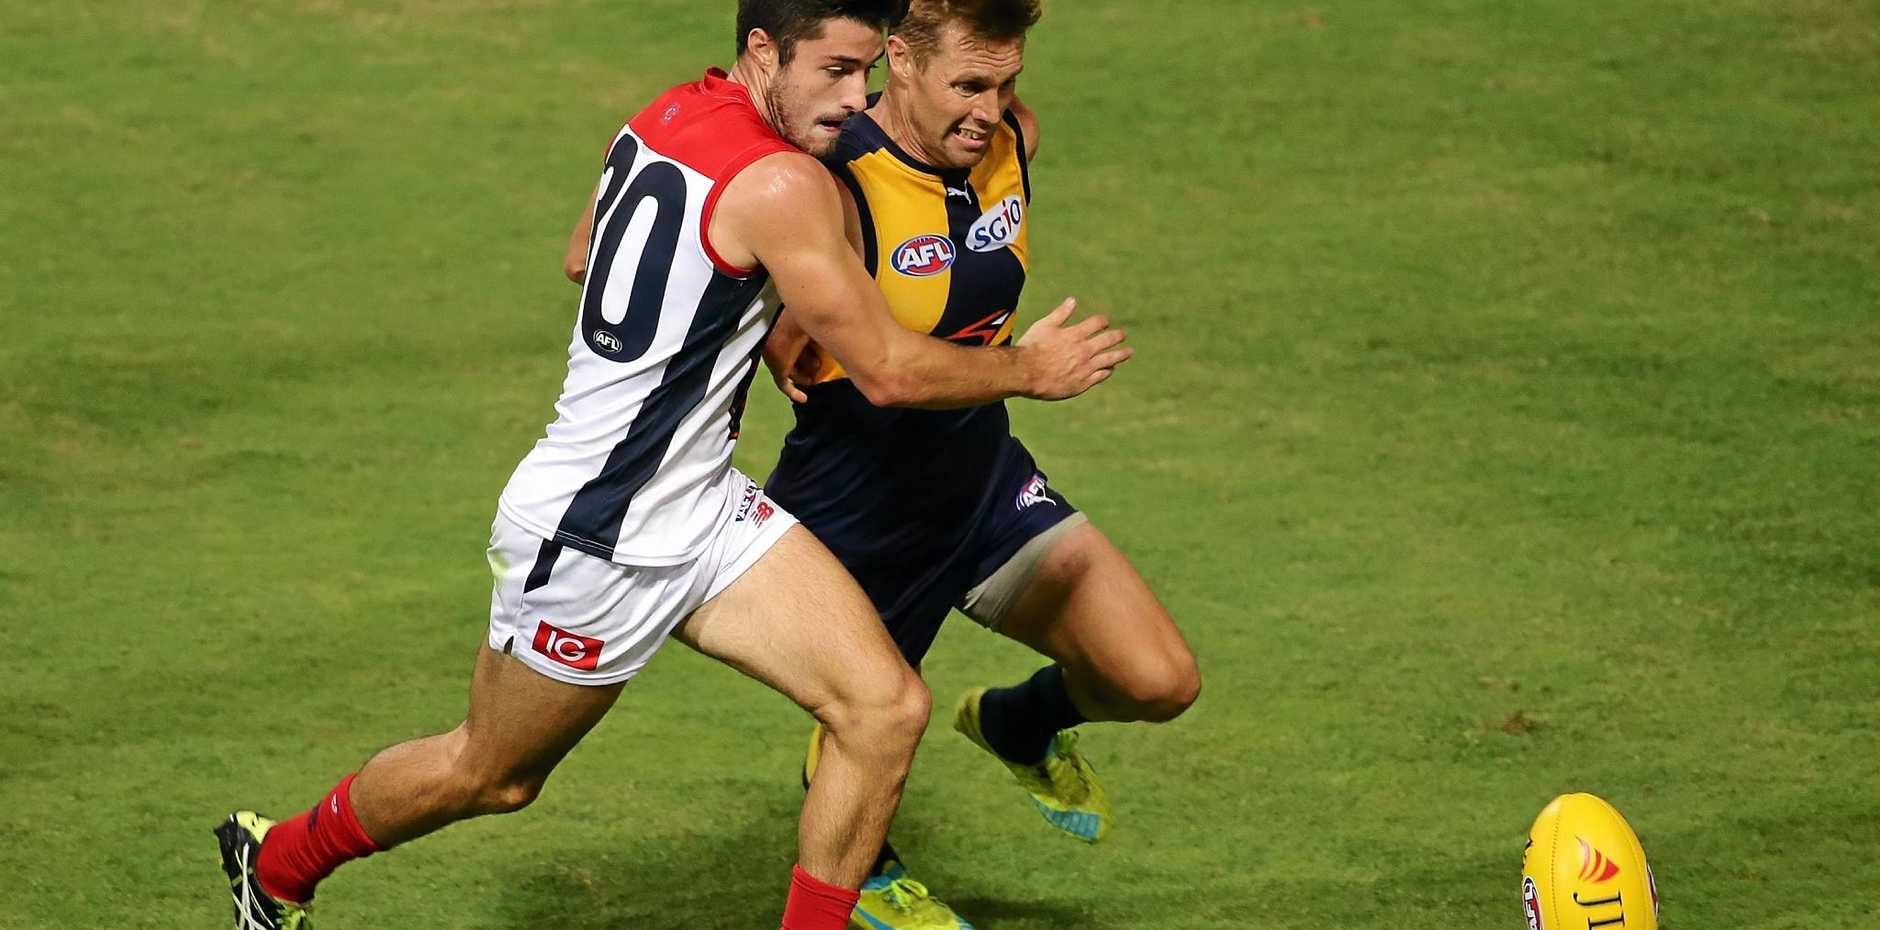 Colin Garland of the Demons and Sam Mitchell of the Eagles chase the ball.